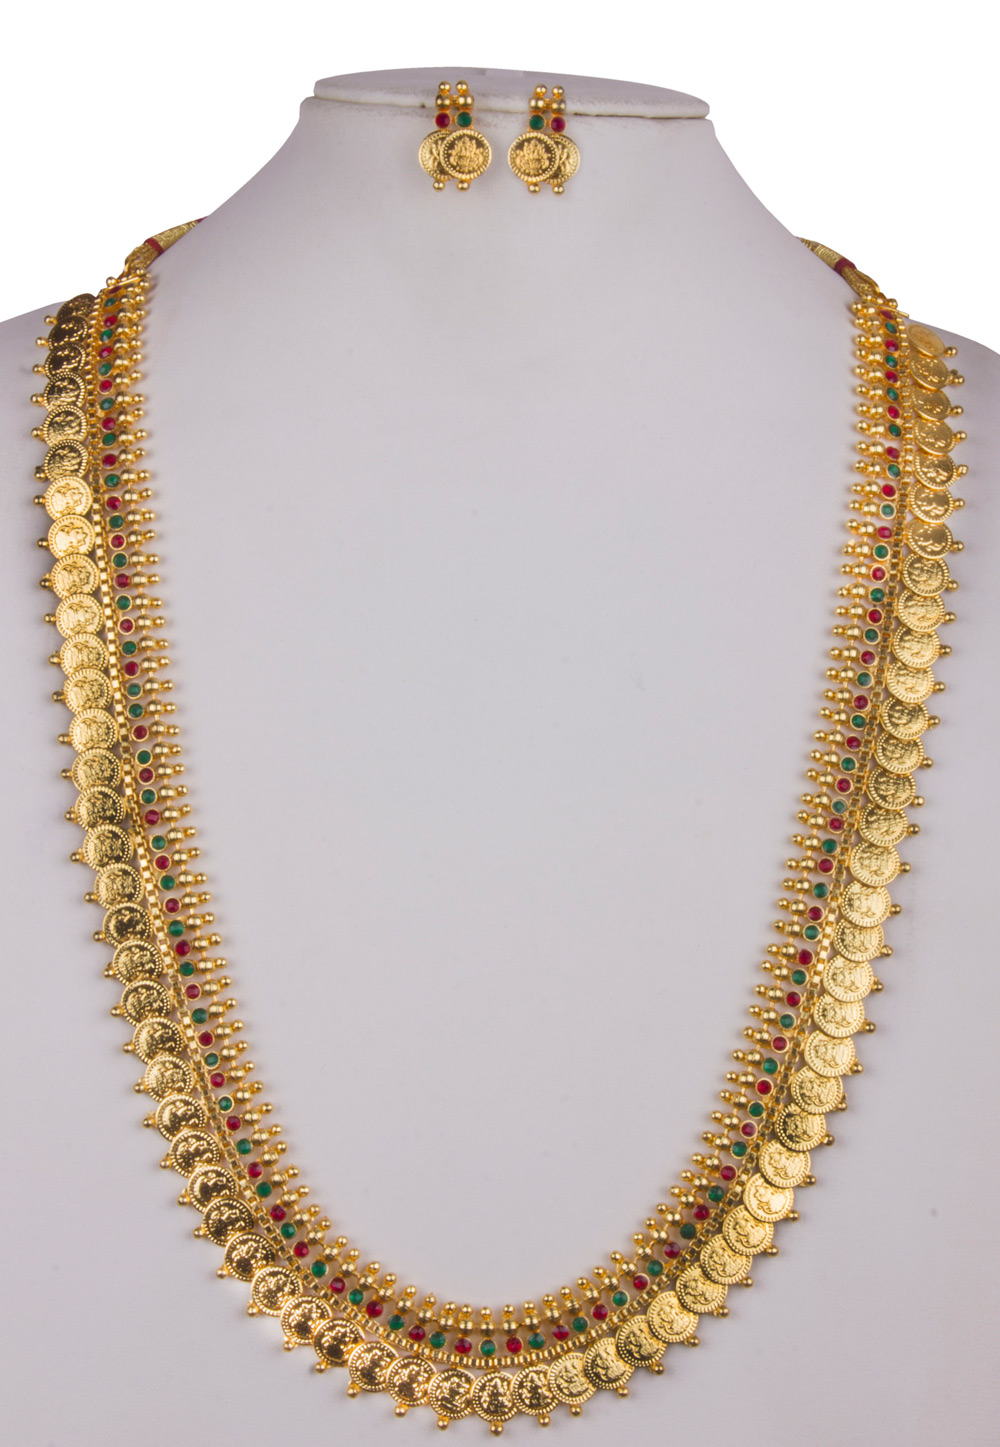 Golden Alloy Long Necklace With Earrings 157107